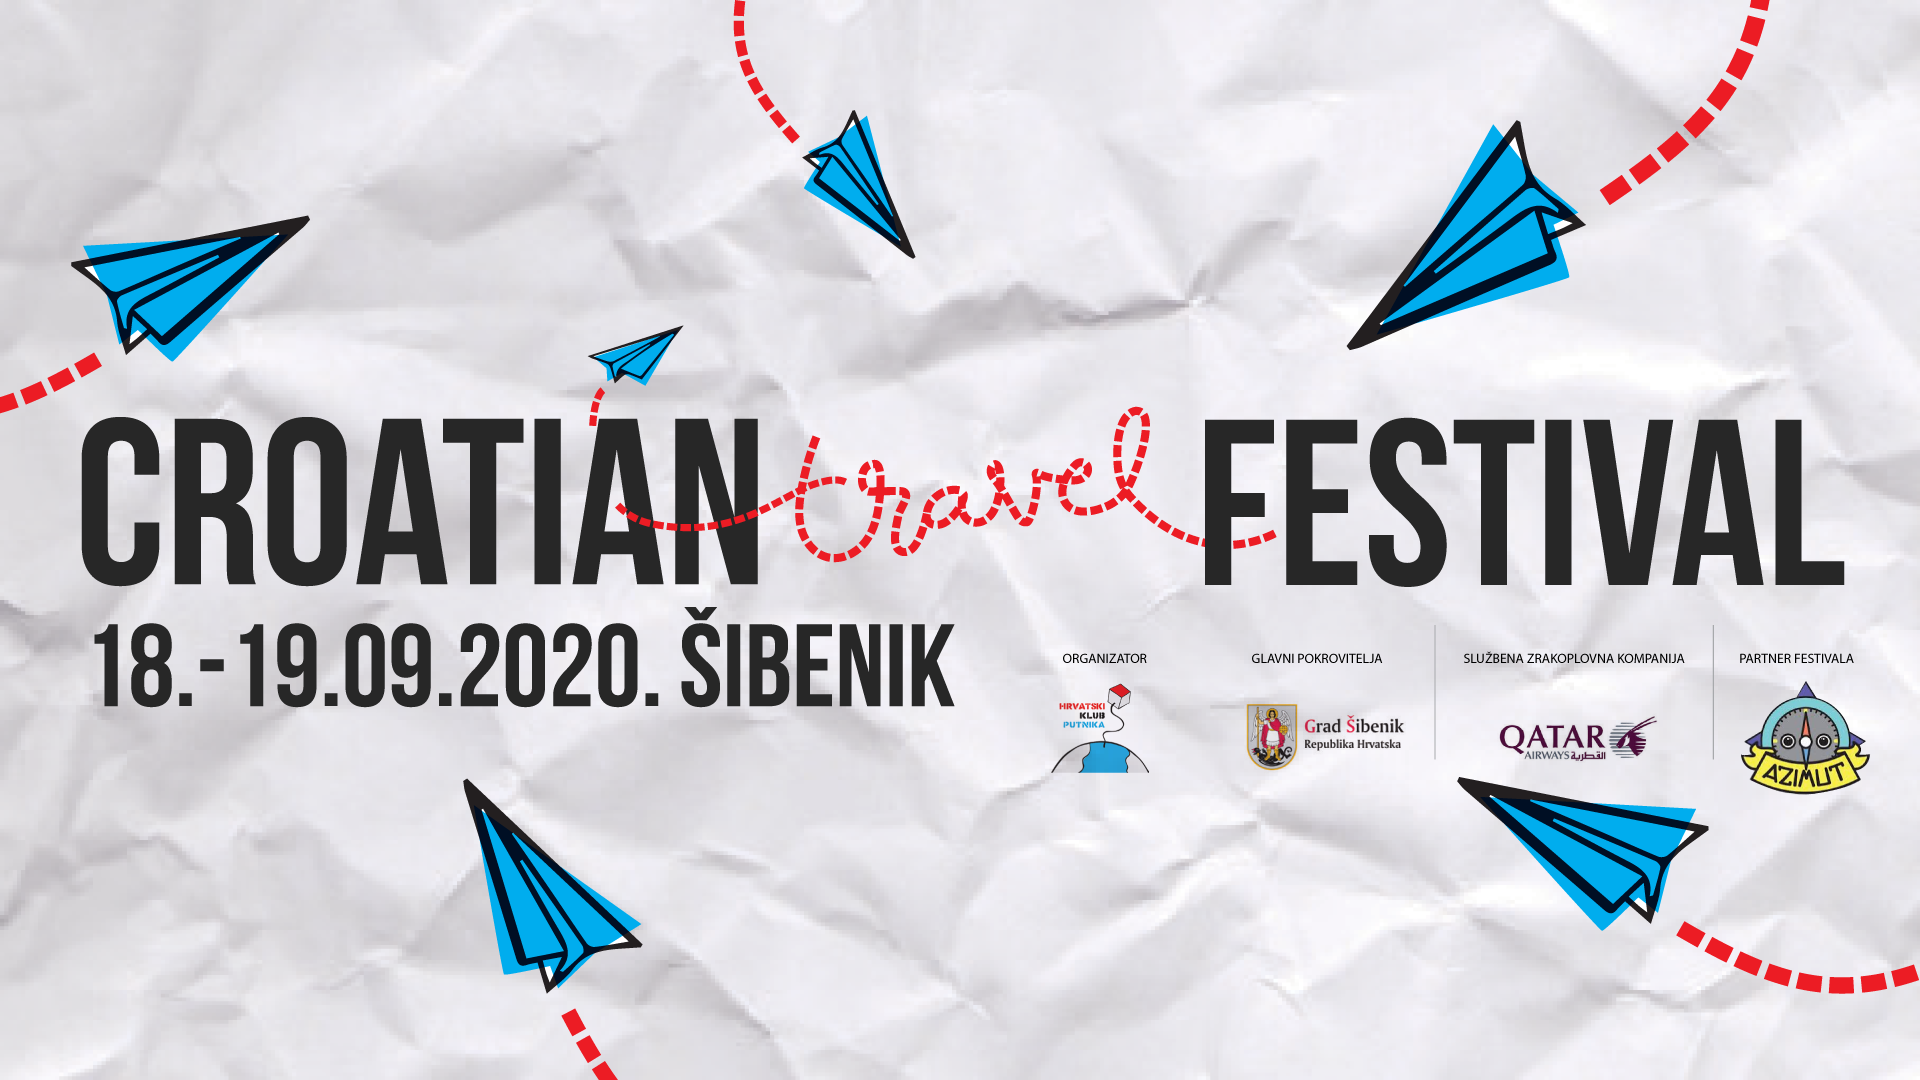 Program 9. Croatian Travel Festivala - Šibenik 2020.